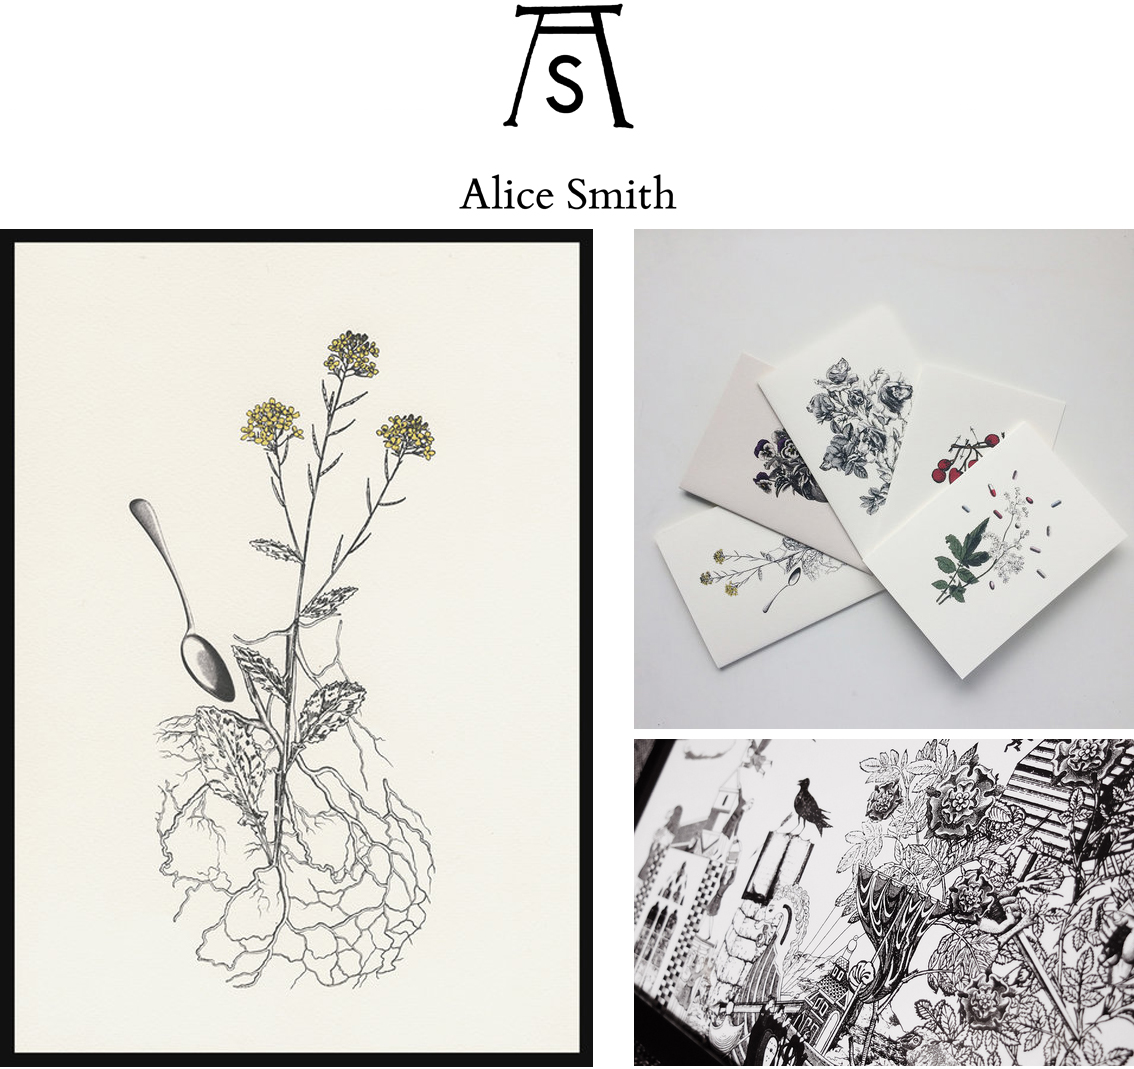 Alice Smith 's stunning work was a new but very welcome discovery for me.Alice produces work in the form of books and limited edition prints.Her work includes a mixture of line drawing and collage, and occasionally employs printmaking techniques including silkscreen and letterpress printing. My favourite items on her stall were her beautiful printed seed packets - right up my street!